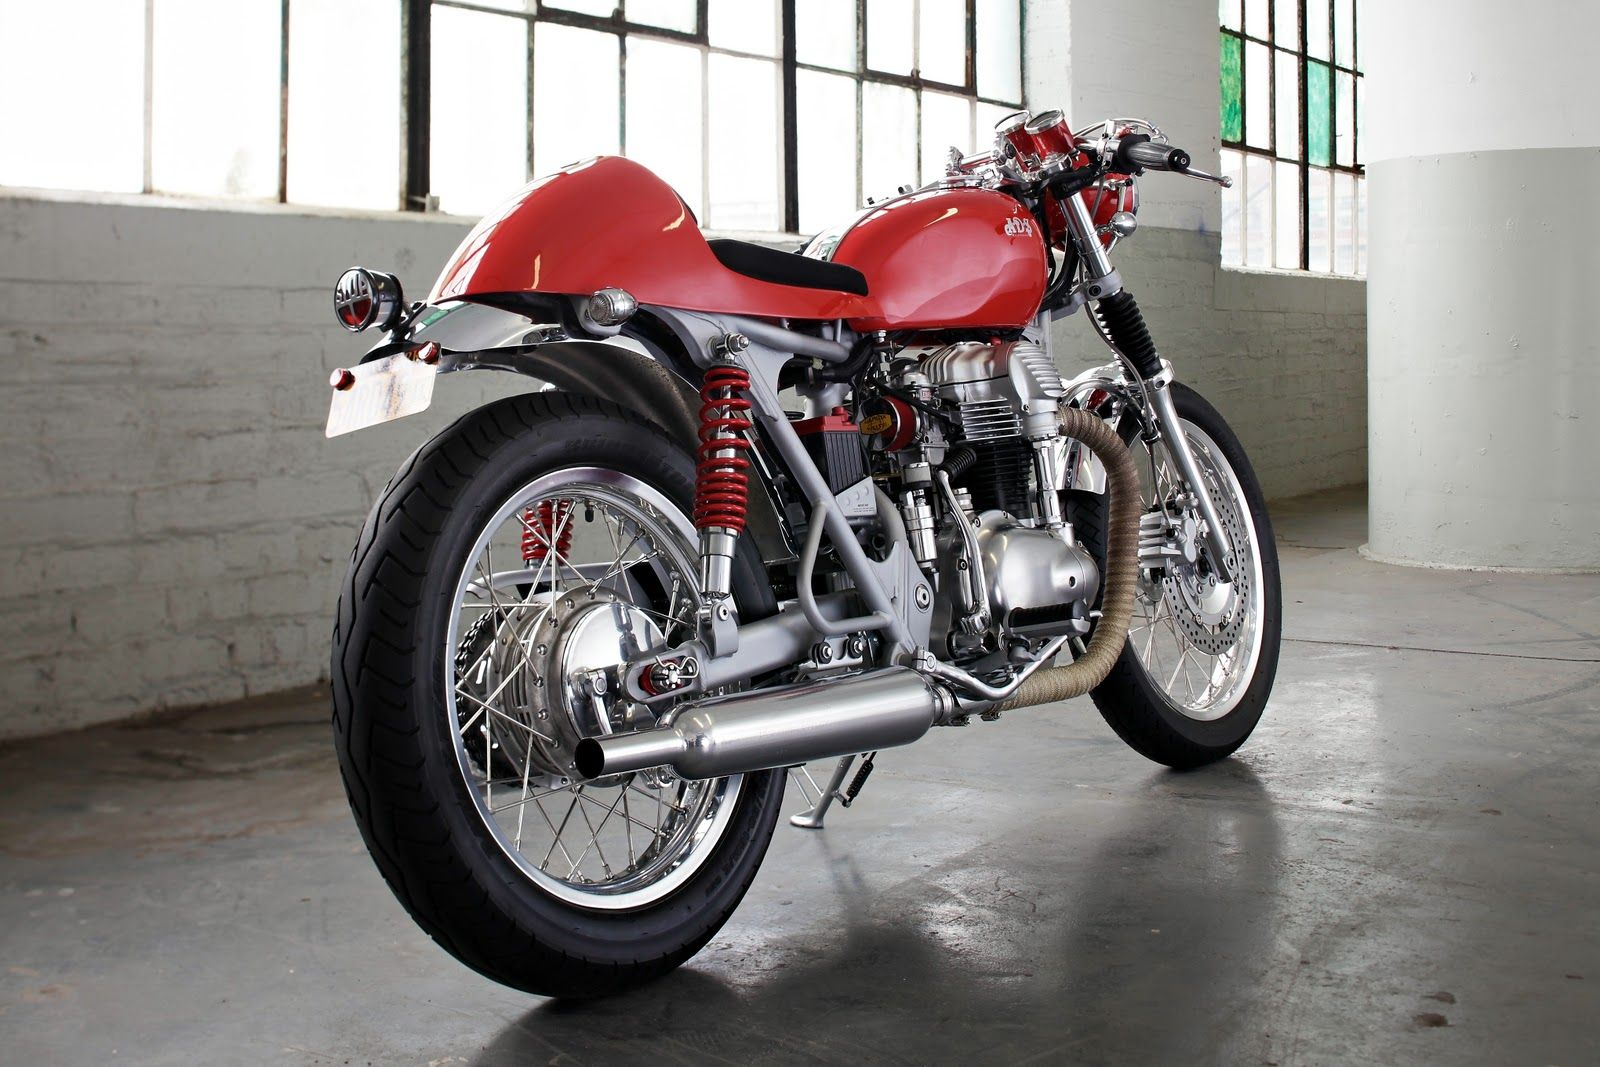 Image Result For Kawasaki W800 Cafe Racer Two Wheels Custom Cafe